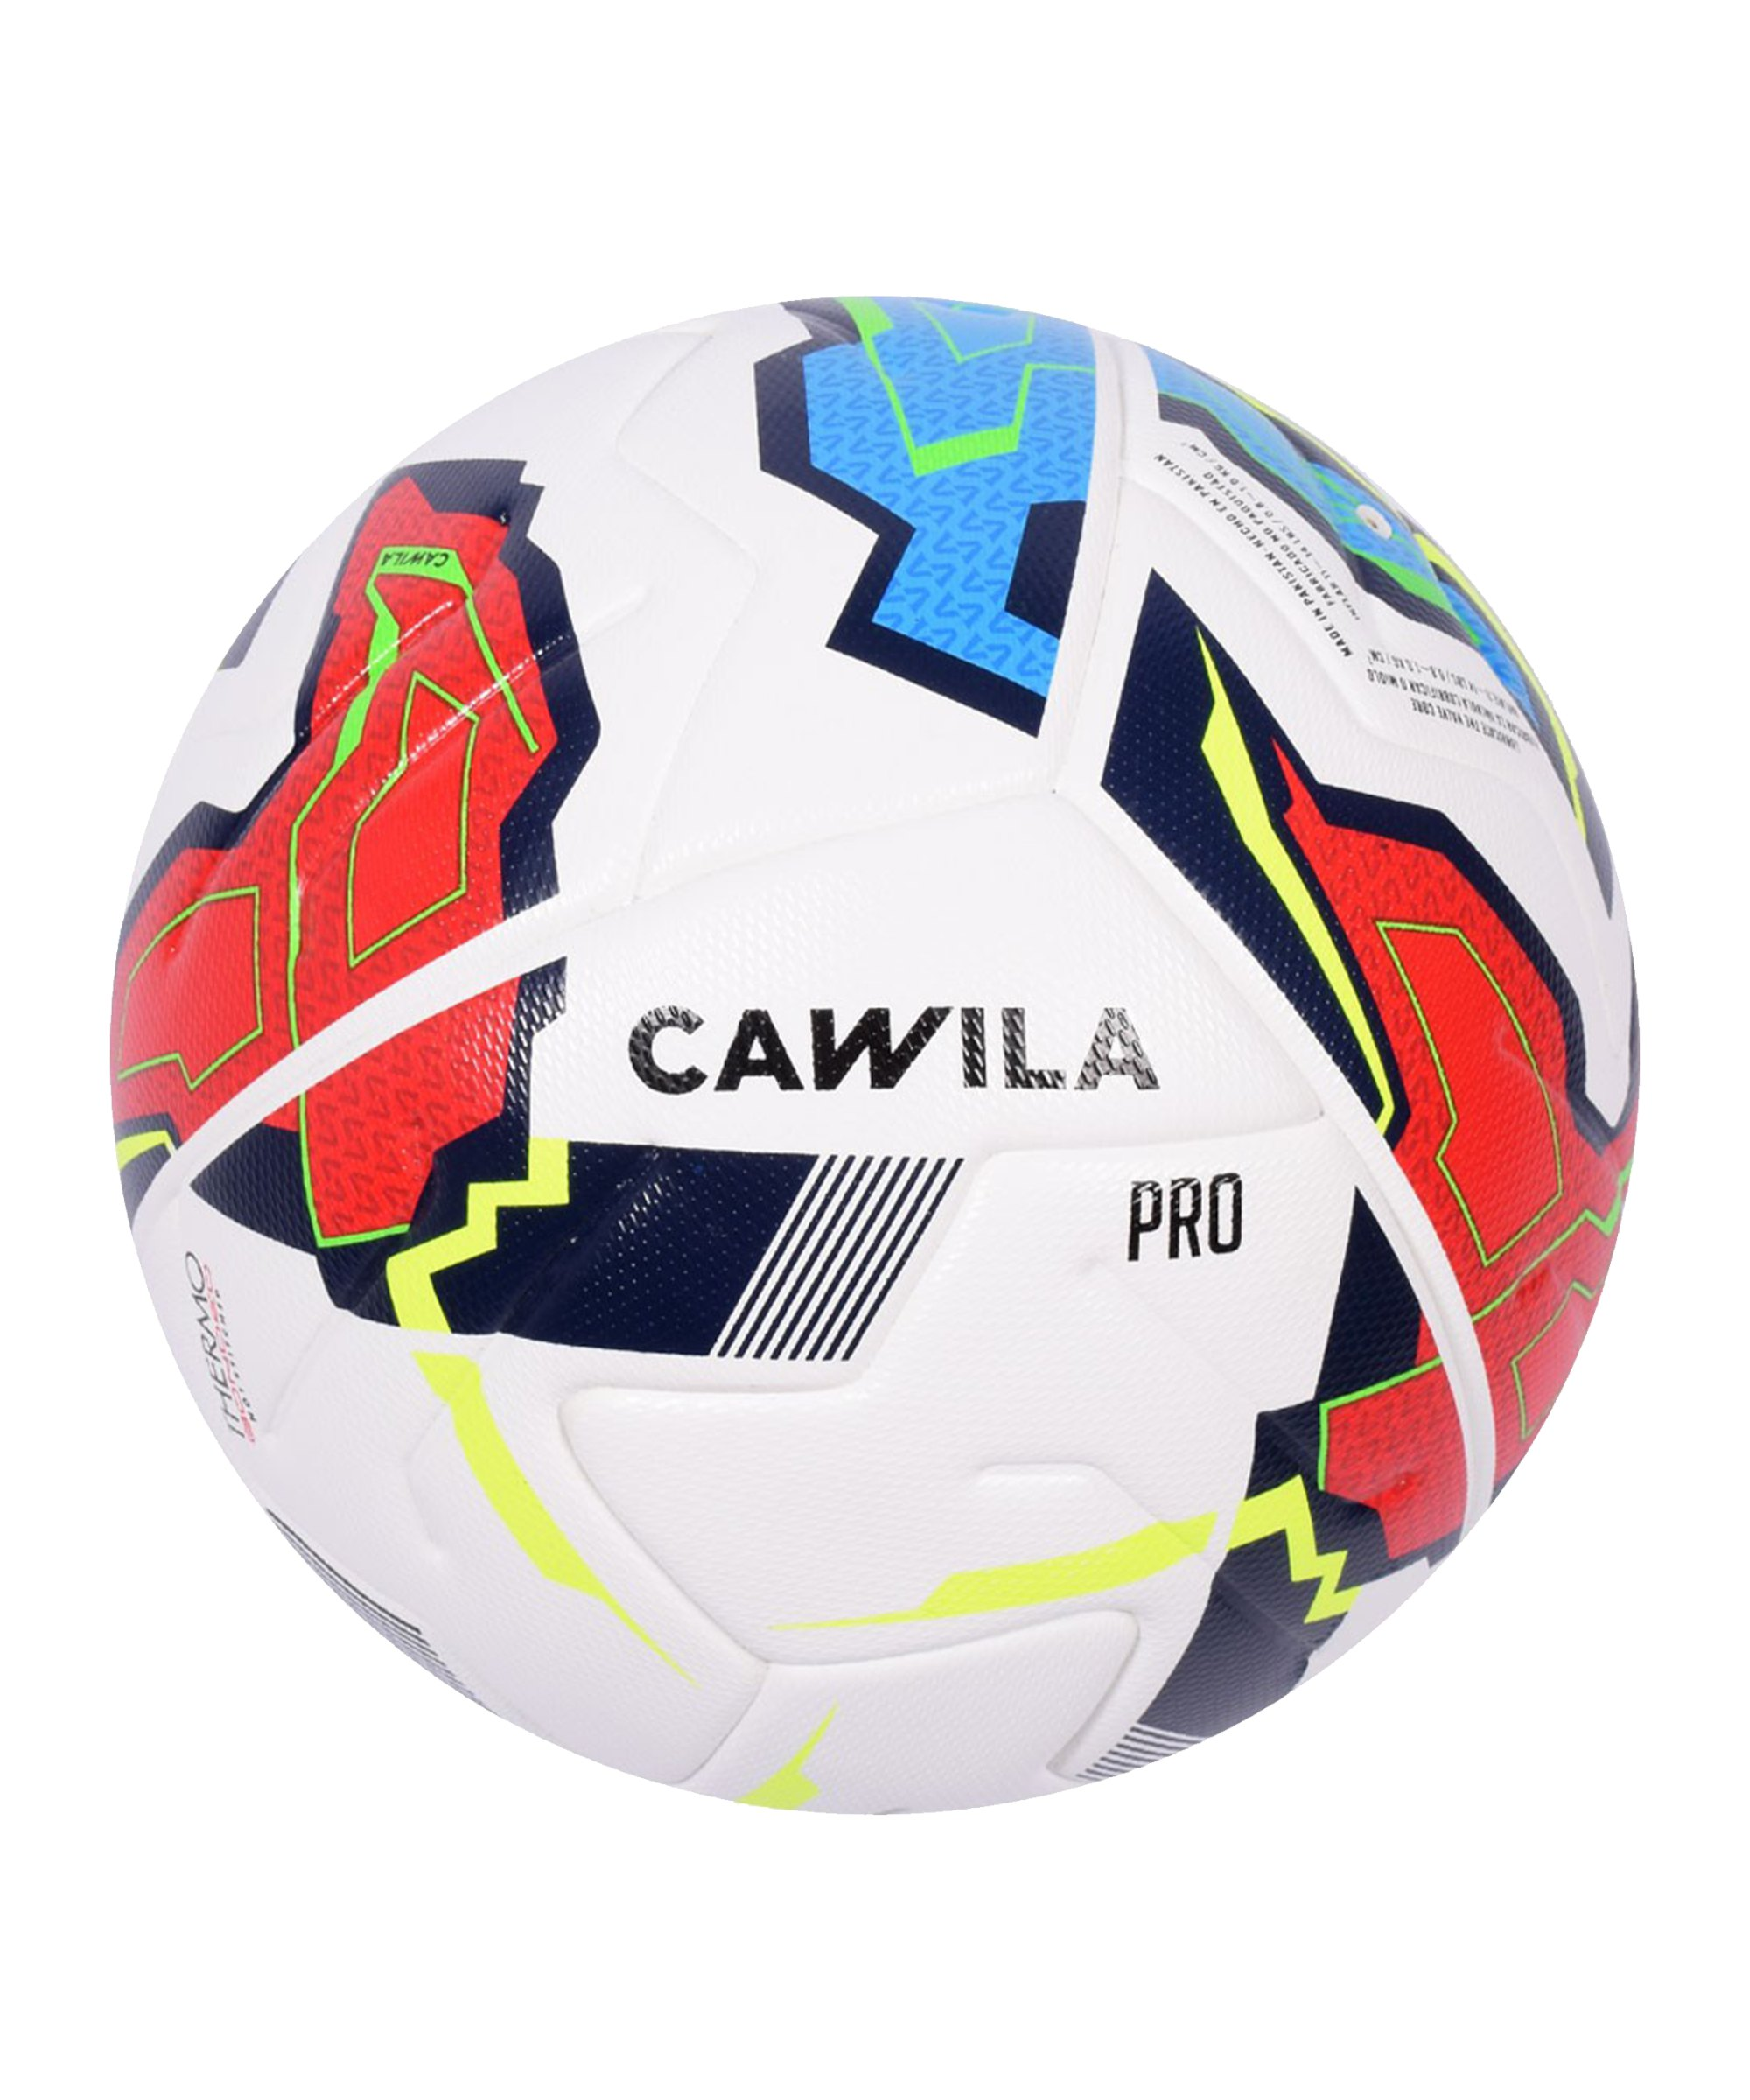 Cawila Fussball MISSION INVERTER Fairtrade 5 - weiss